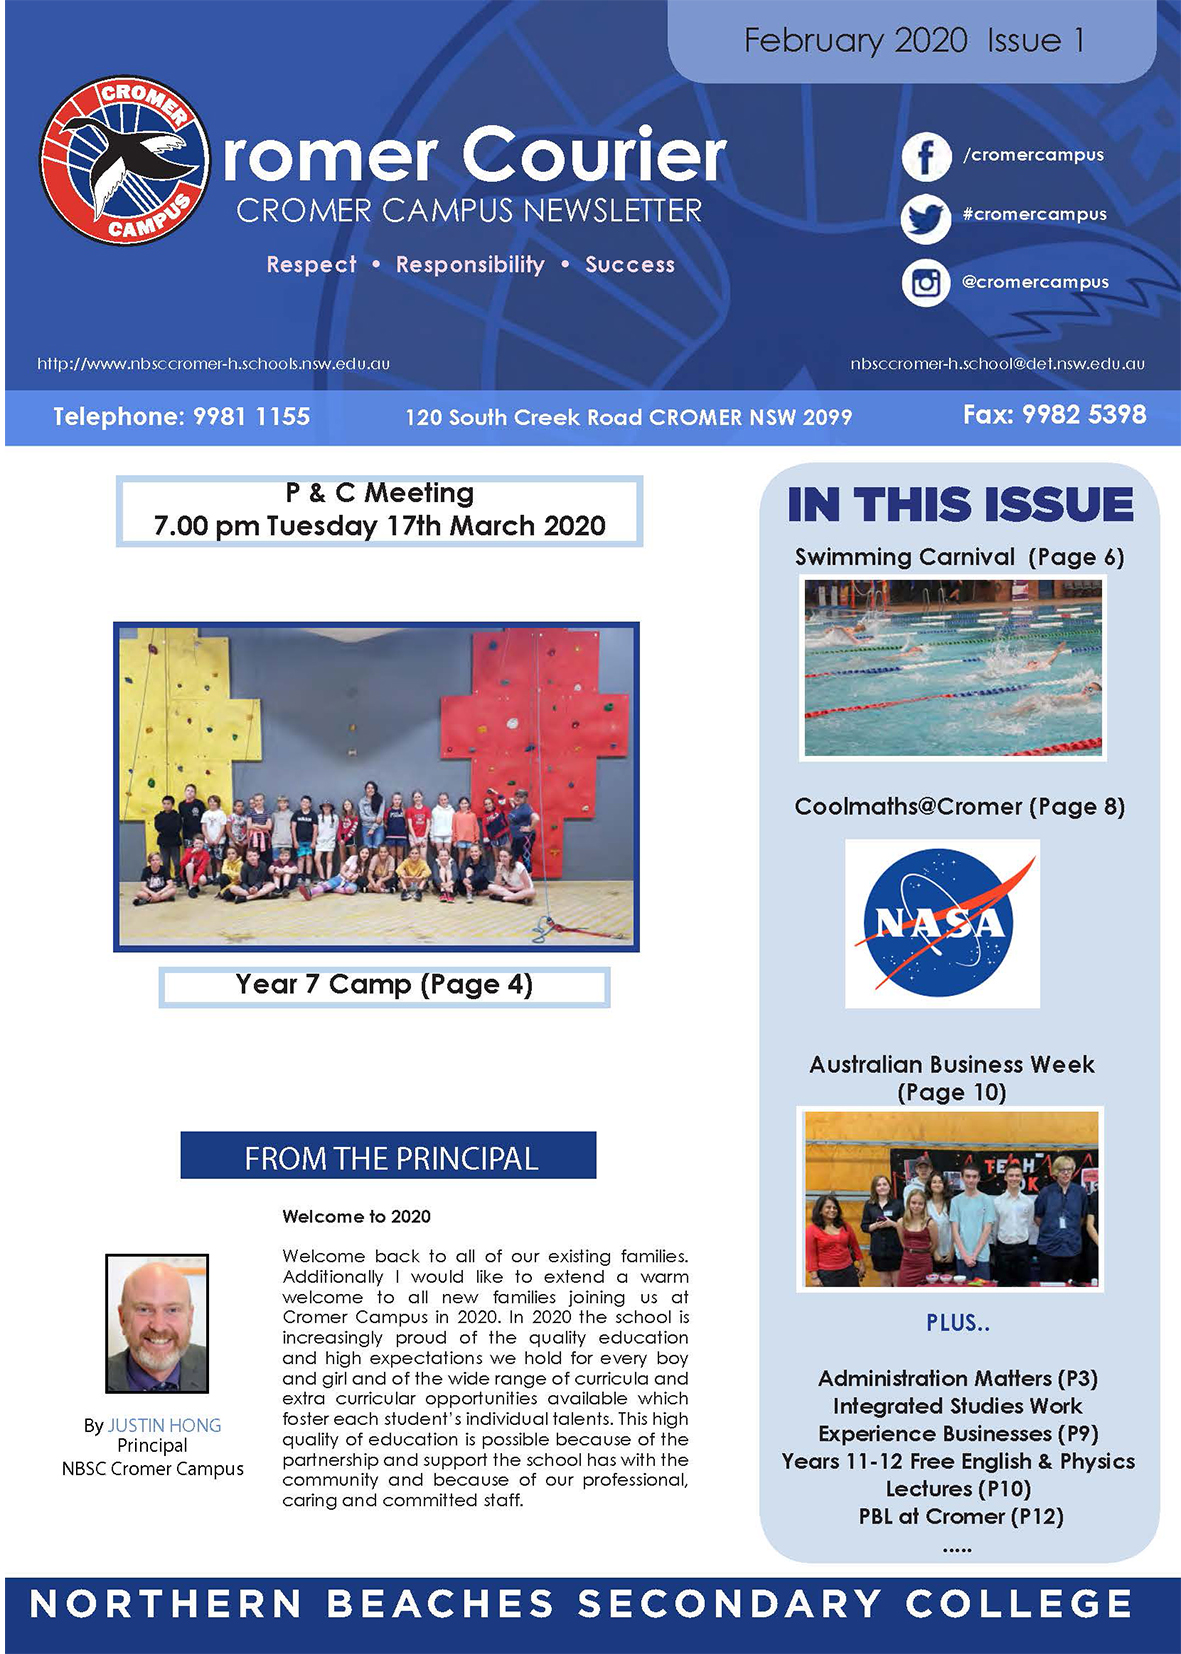 News letter issue 1 2020